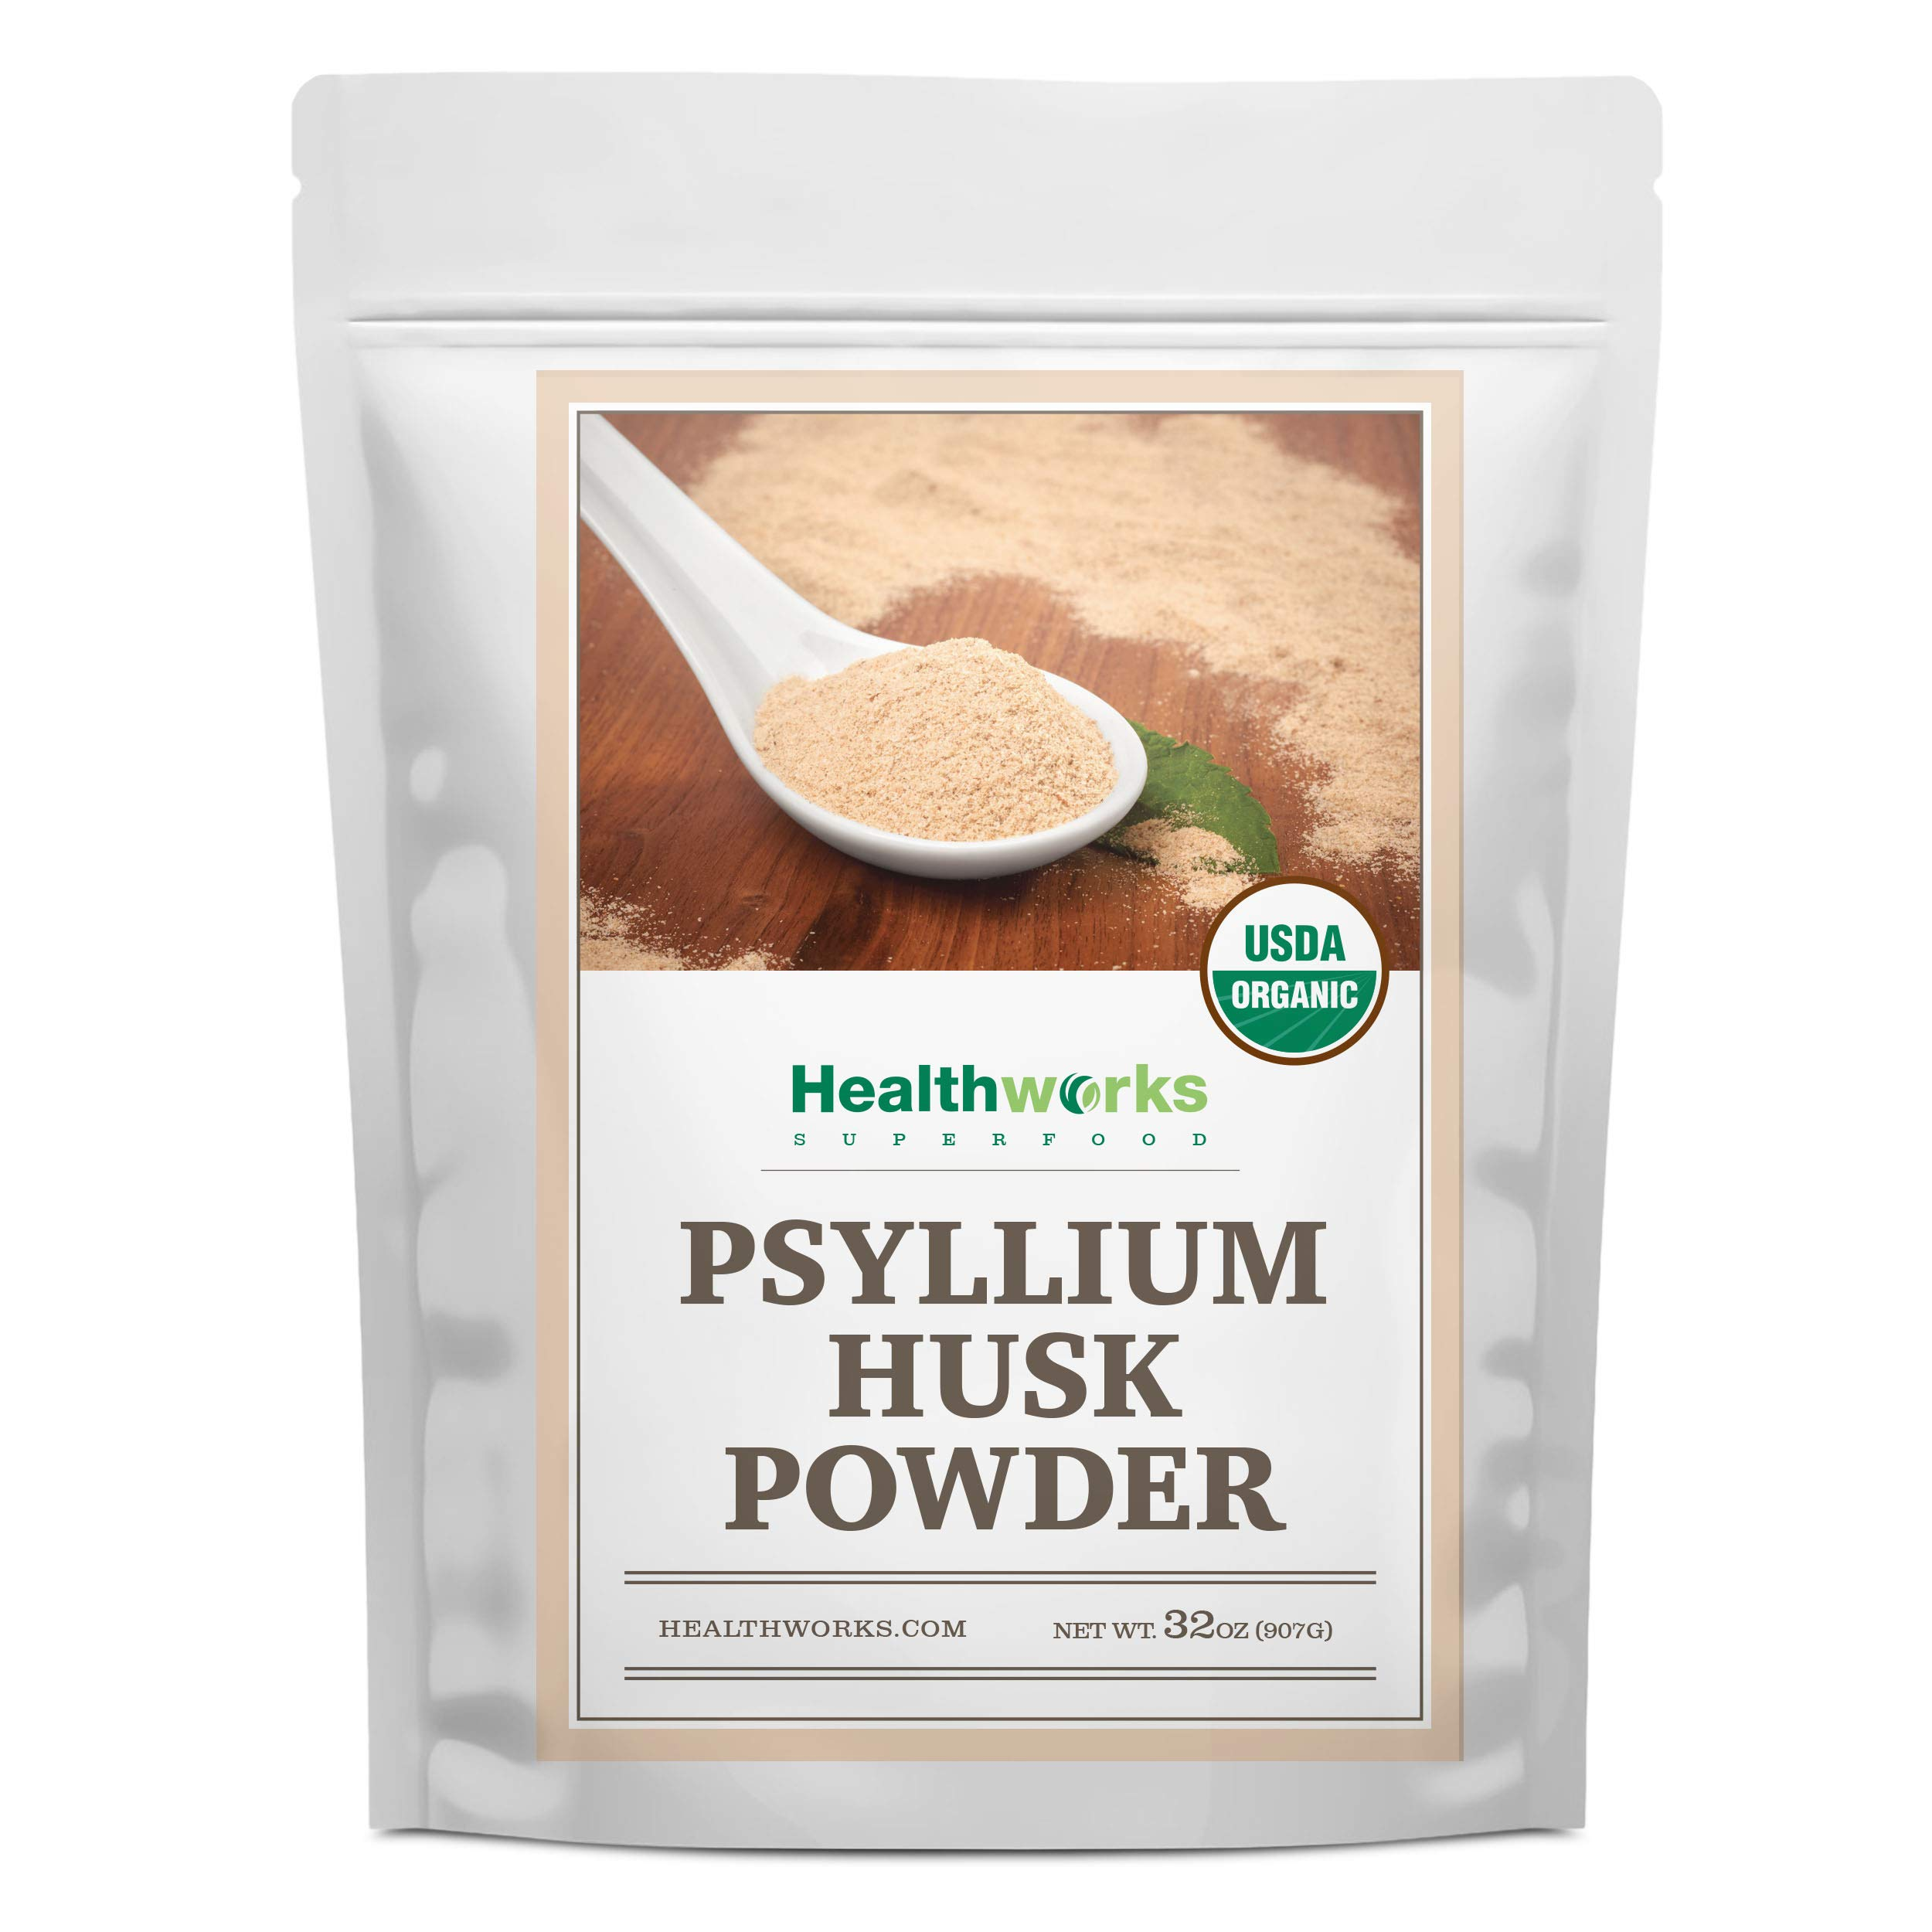 Healthworks Psyllium Husk Powder (32 Ounces / 2 Pounds) | Raw | Certified Organic | Finely Ground Powder from India | Keto, Vegan & Non-GMO | Fiber Support | Packaging May Vary by Healthworks